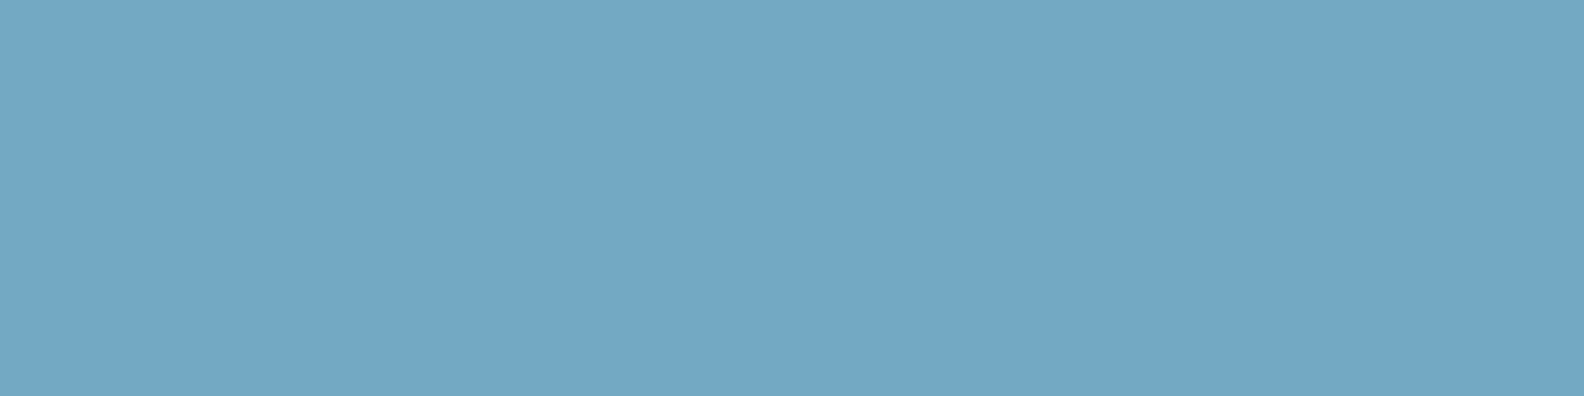 1584x396 Moonstone Blue Solid Color Background